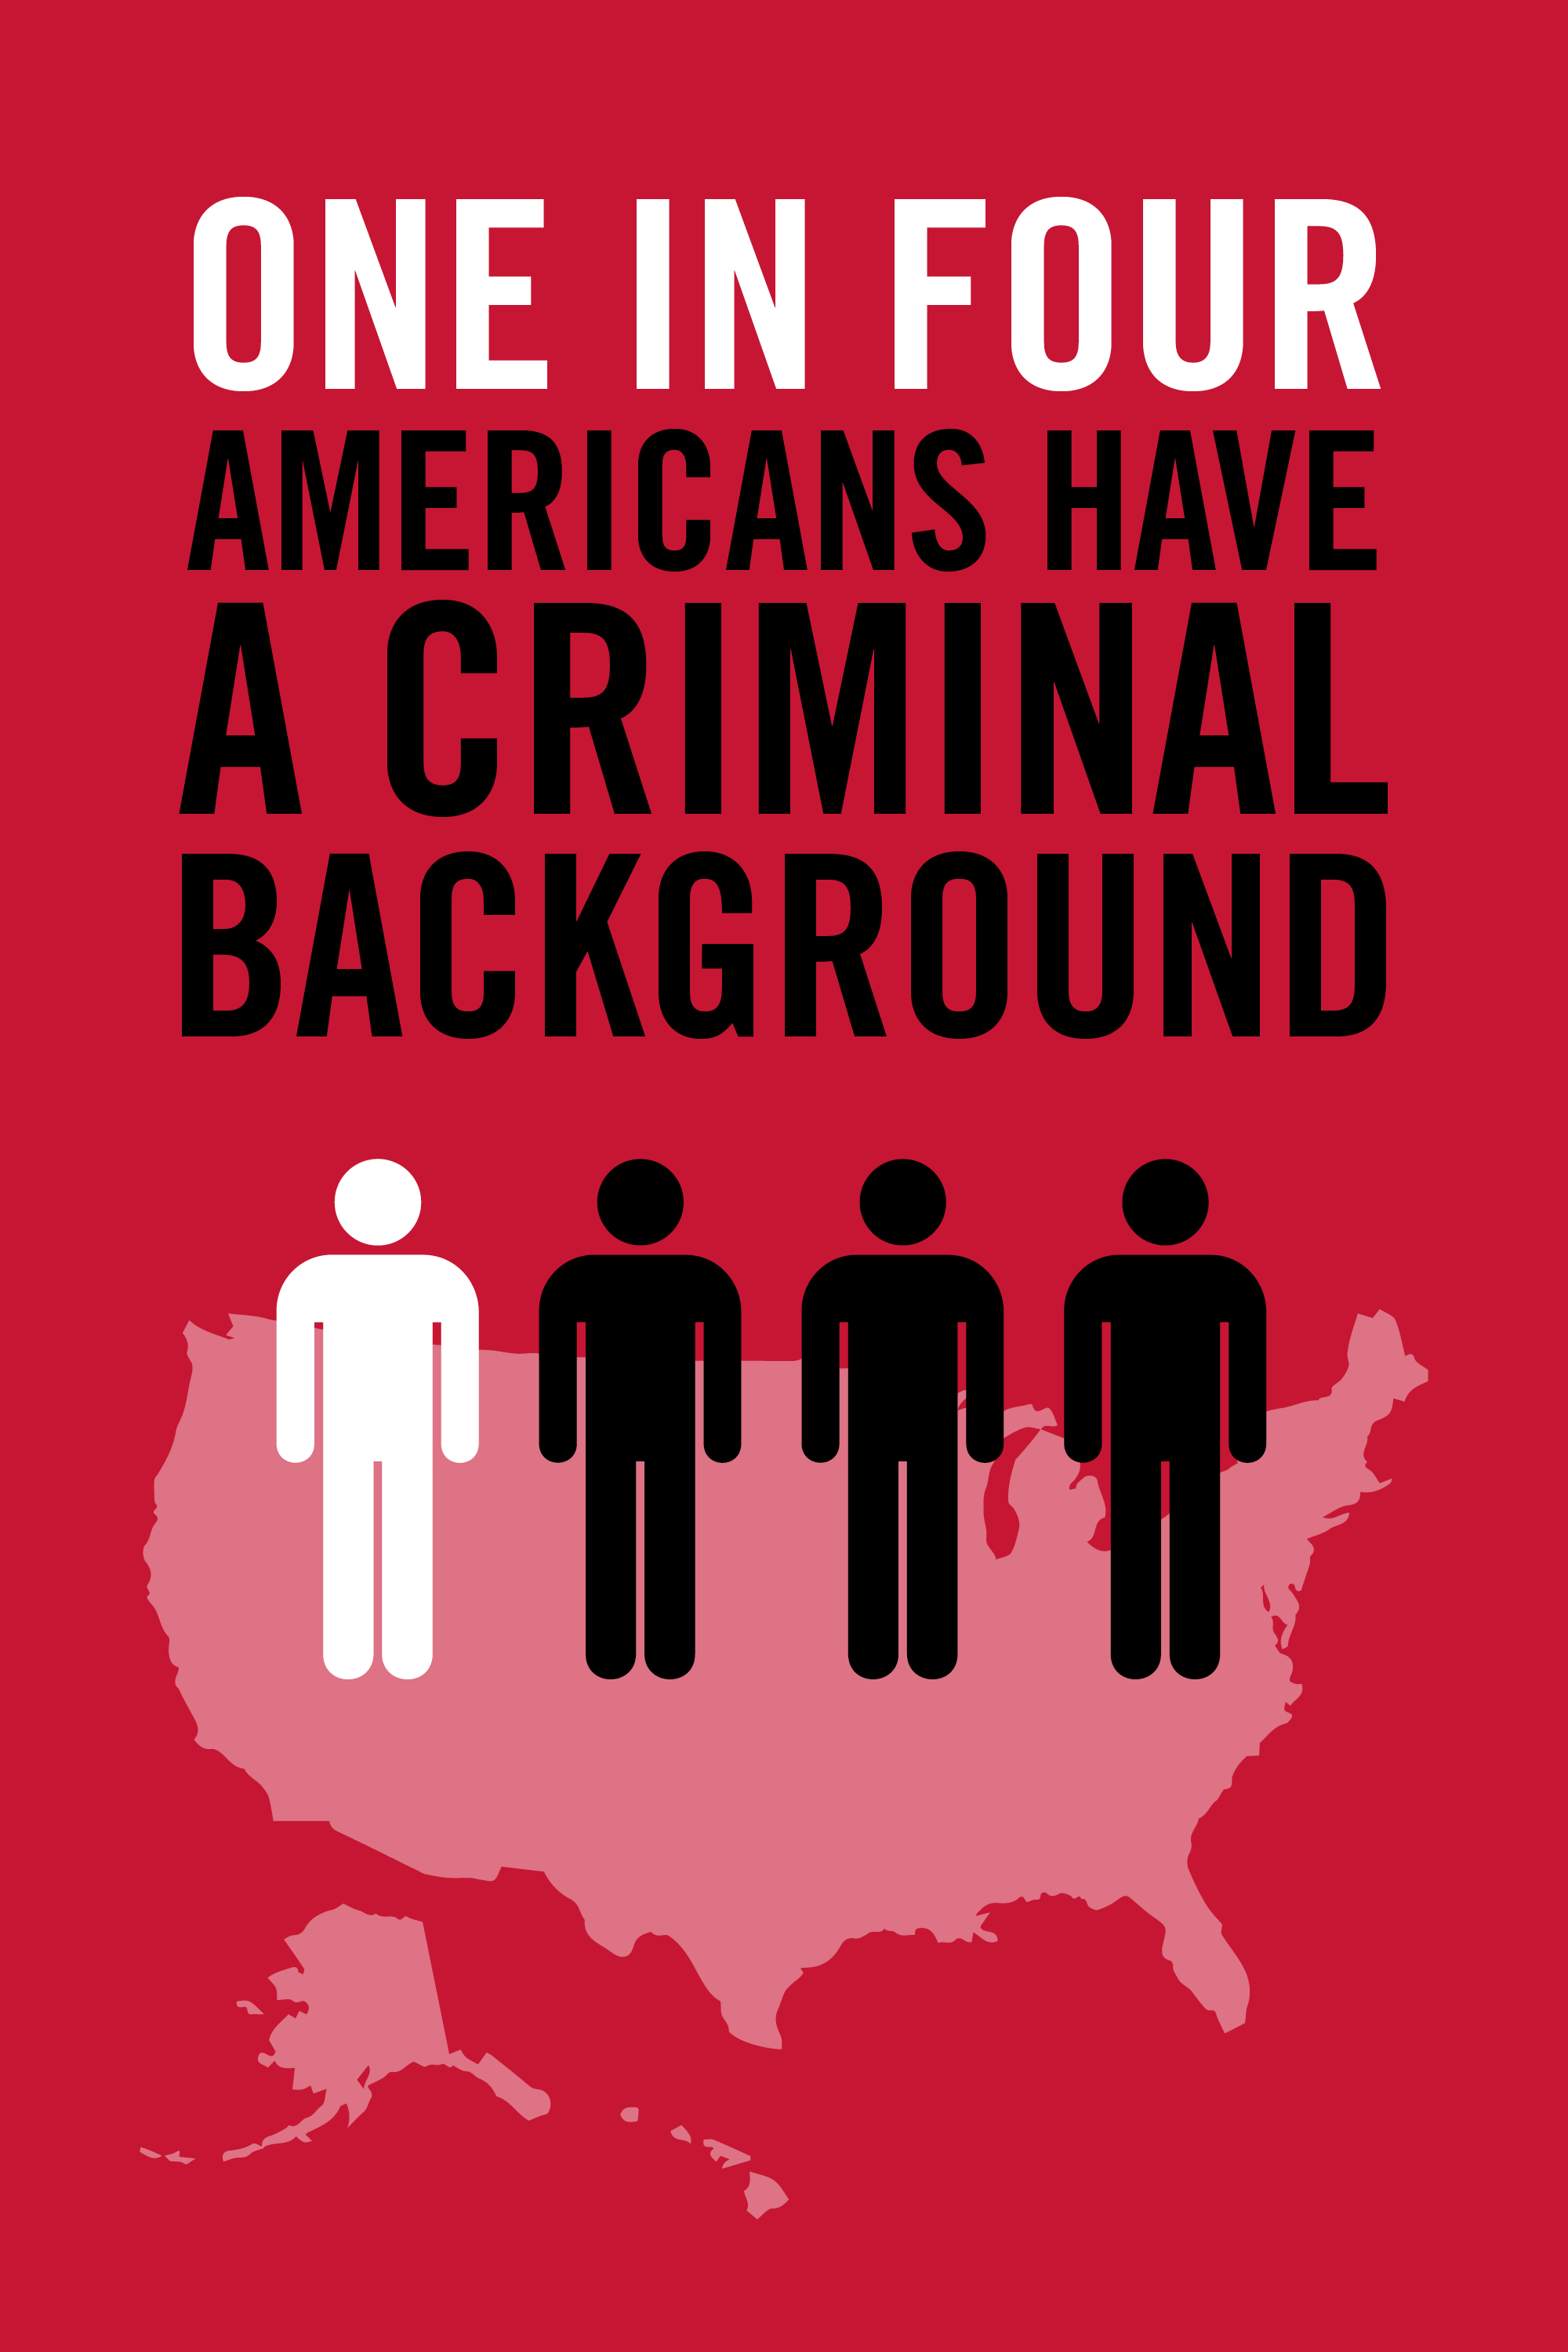 Source:  65 Million Need Not Apply: The Case for Reforming Criminal Background Checks for Employment by Michelle Rodriguez and Maurice Emsellem for National Employment Law Project (2011), available at  http://www.nelp.org/publication/65-million-need-not-apply-the-case-for-reforming-criminal-background-checks-for-employment/